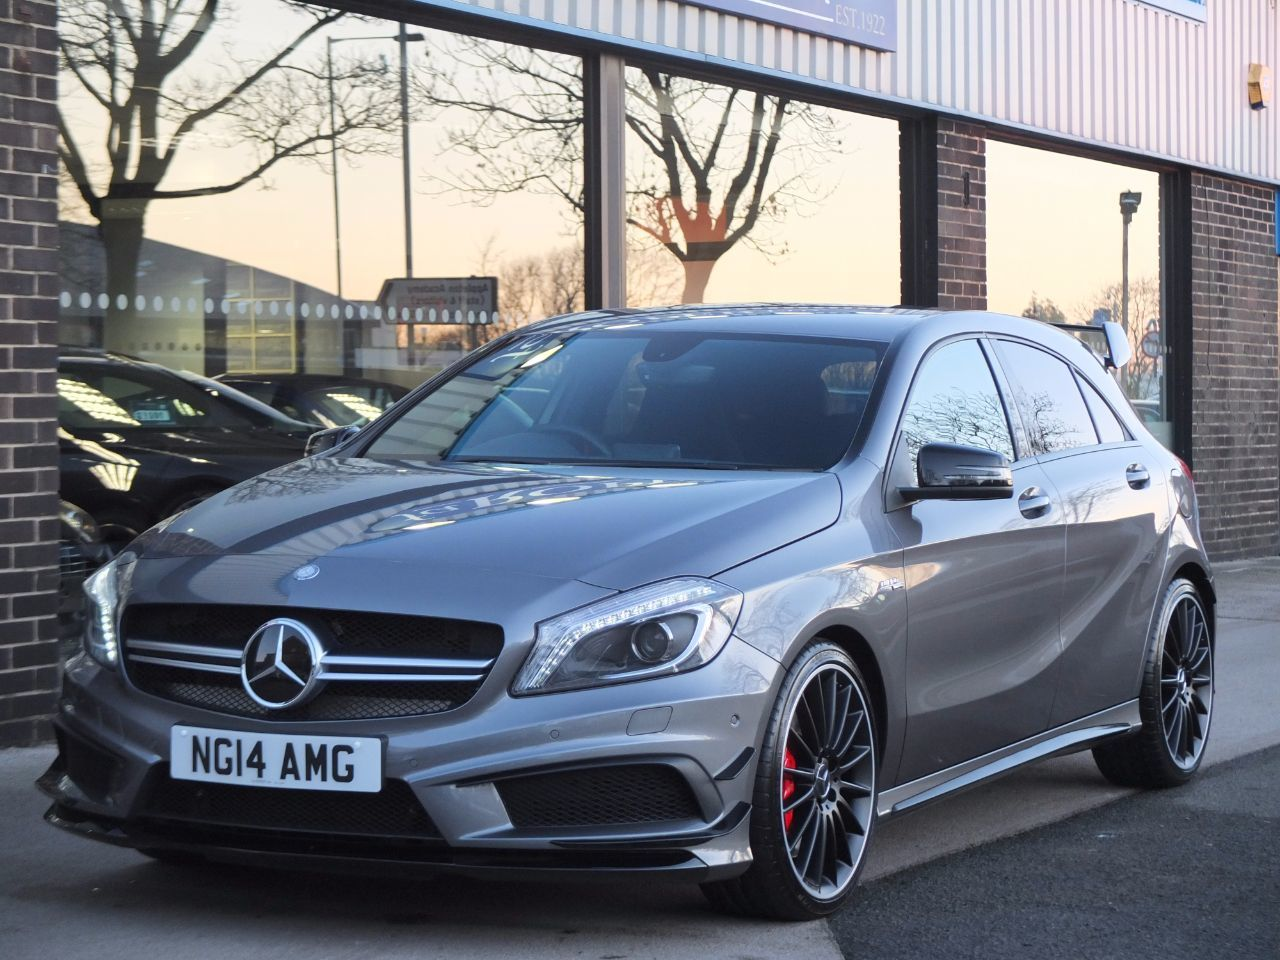 Mercedes-Benz A Class 2.0 A45 AMG 4-MATIC 7G-DCT Hatchback Petrol Mountain Grey MetallicMercedes-Benz A Class 2.0 A45 AMG 4-MATIC 7G-DCT Hatchback Petrol Mountain Grey Metallic at fa Roper Ltd Bradford